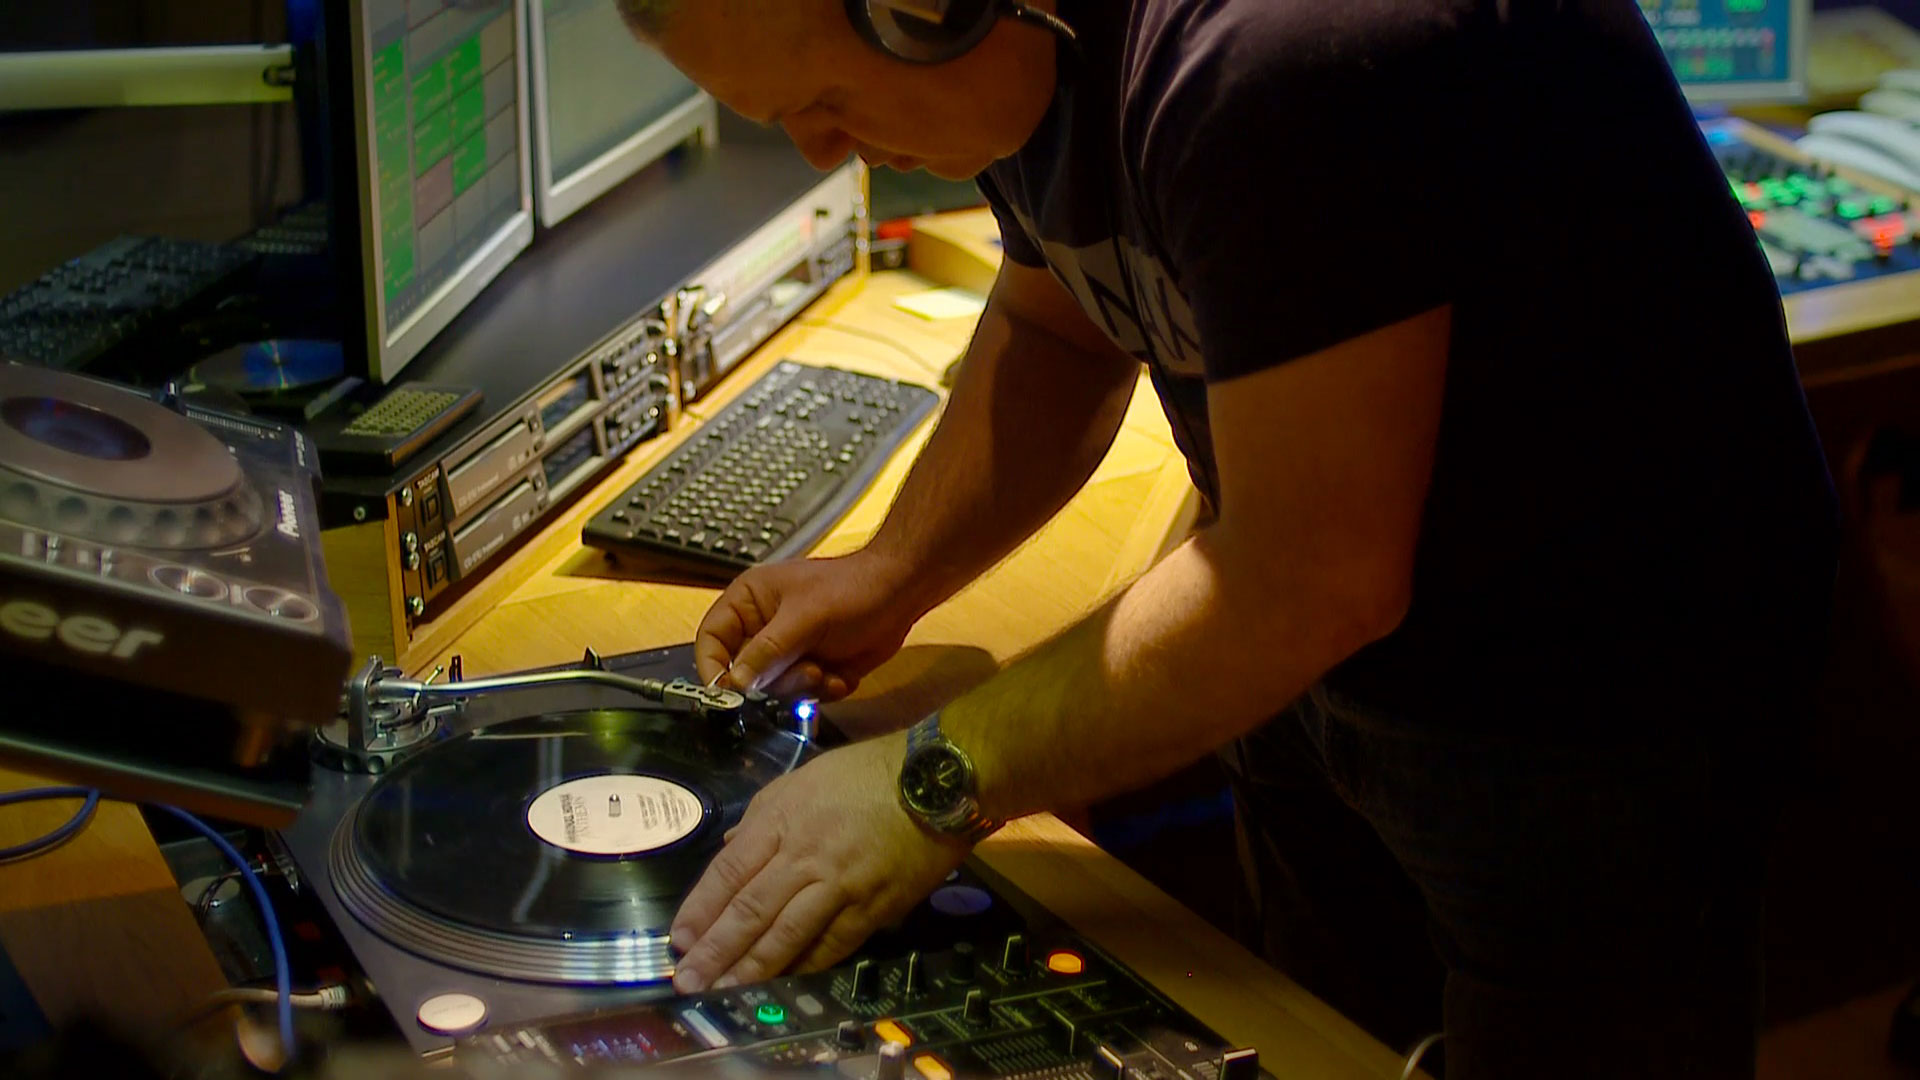 dj-max-welcome-to-the-club-800-03